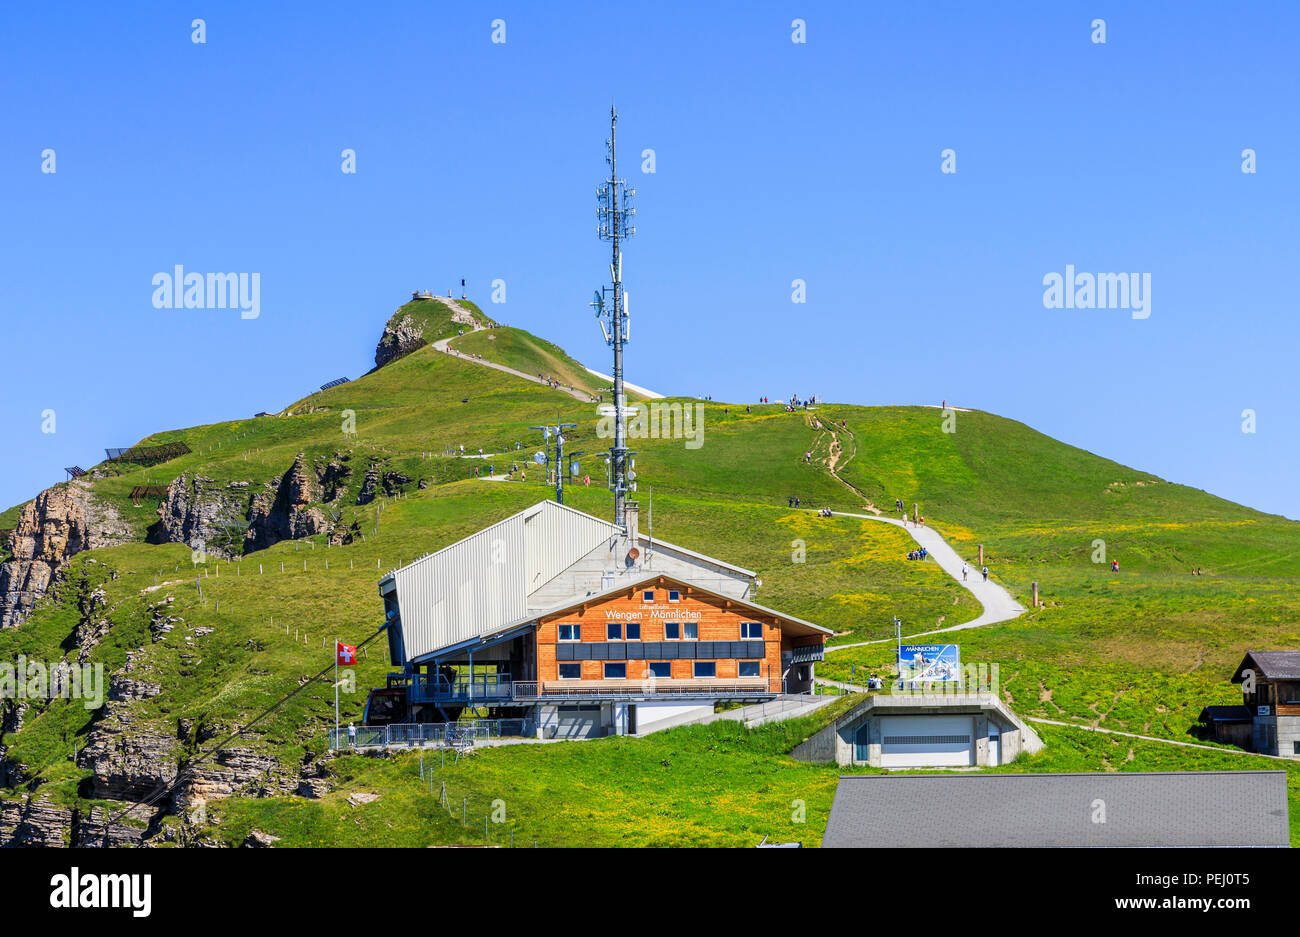 Maennlichen cable car station above Wengen in the Jungfrau region and walking path to the Royal View, Bernese Oberland Switzerland with clear blue sky - Stock Image